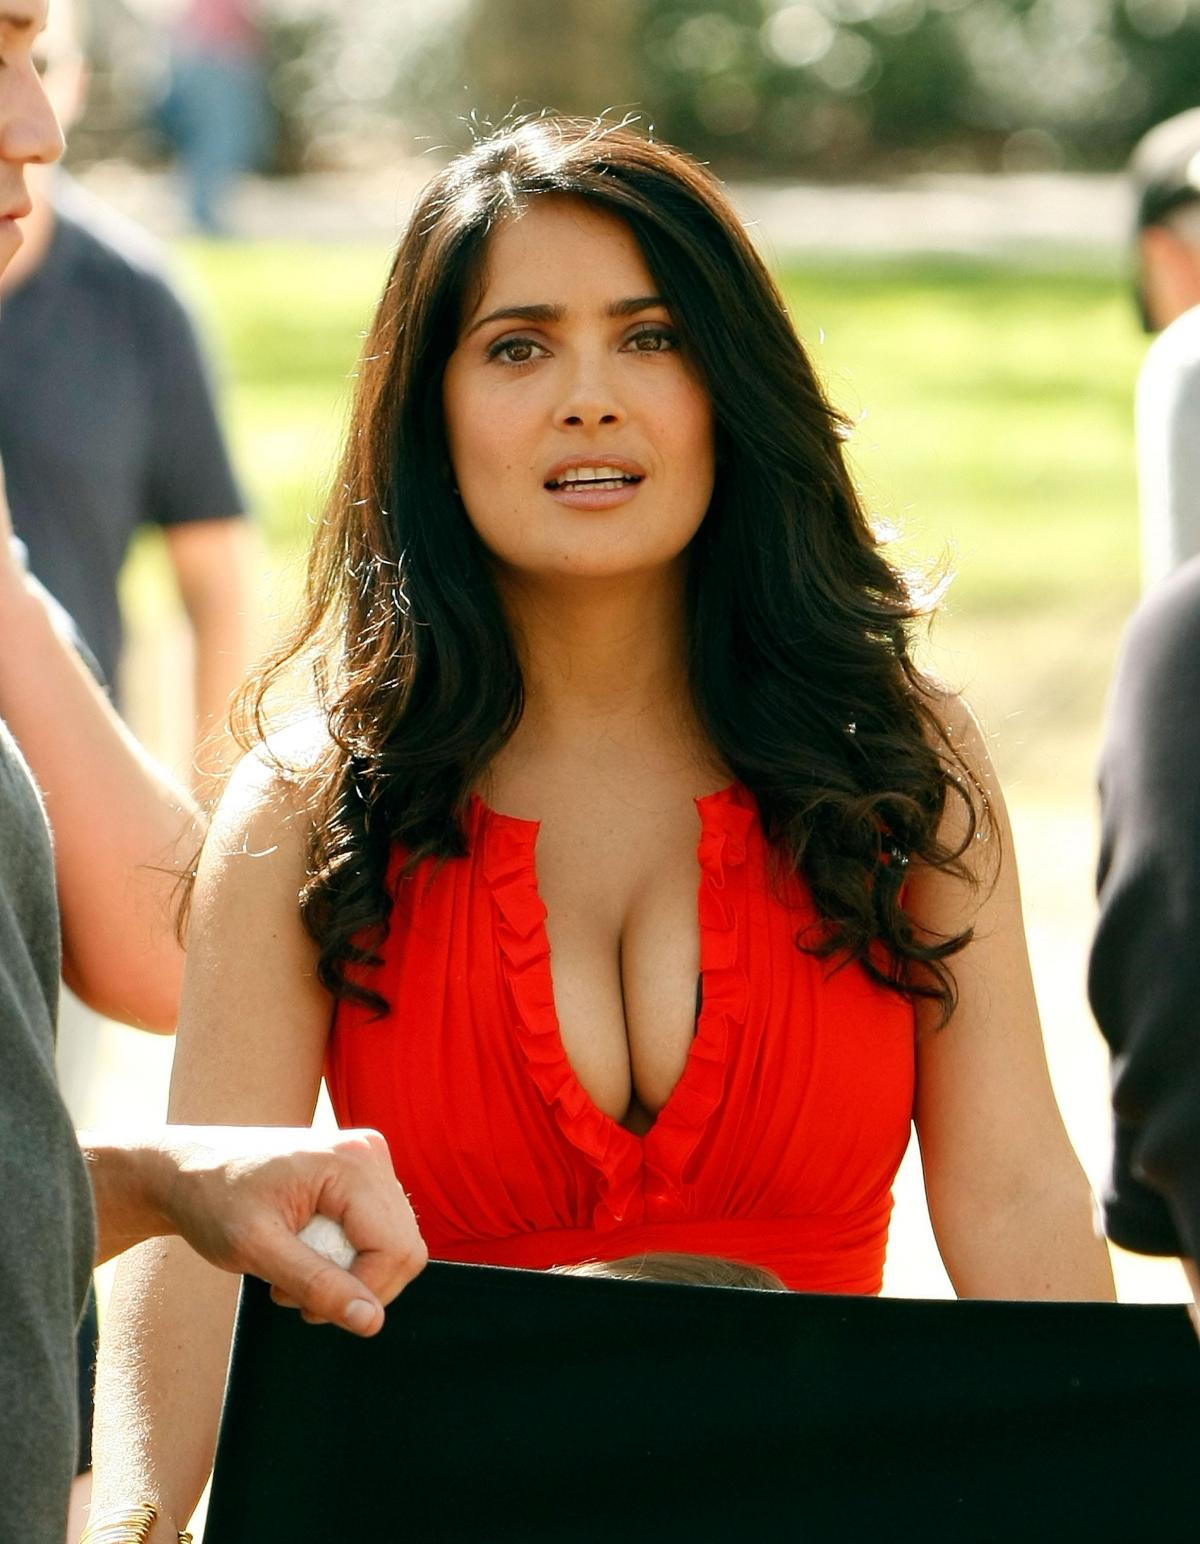 Salma hayek facts and beautiful fresh pictures 2013 for Fresh pictures